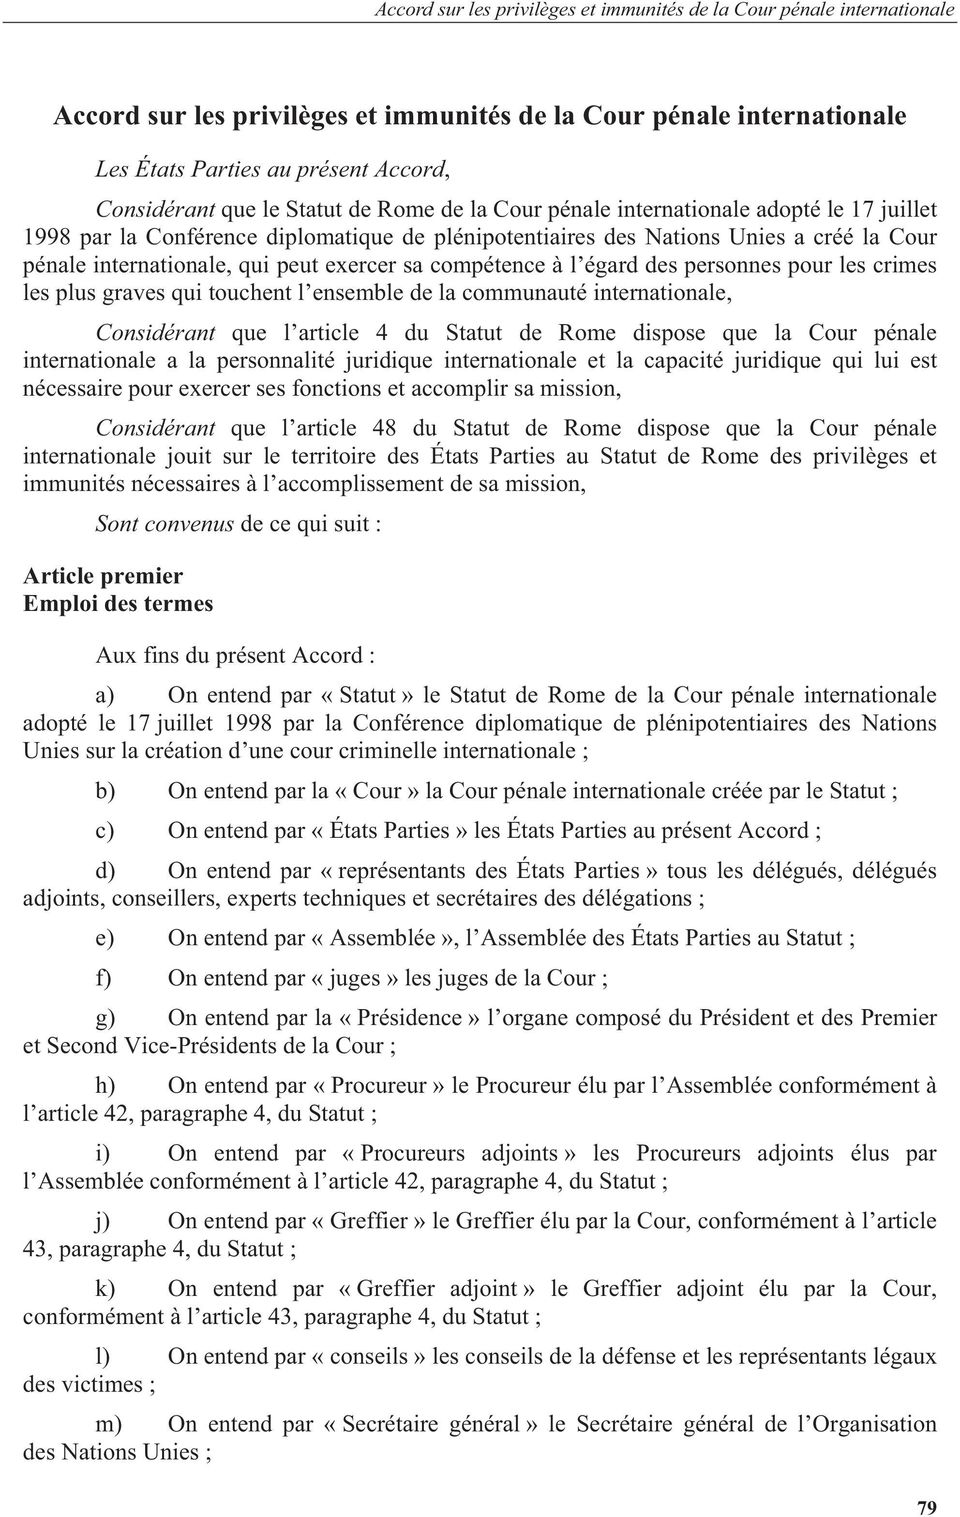 qui touchent l ensemble de la communauté internationale, Considérant que l article 4 du Statut de Rome dispose que la Cour pénale internationale a la personnalité juridique internationale et la